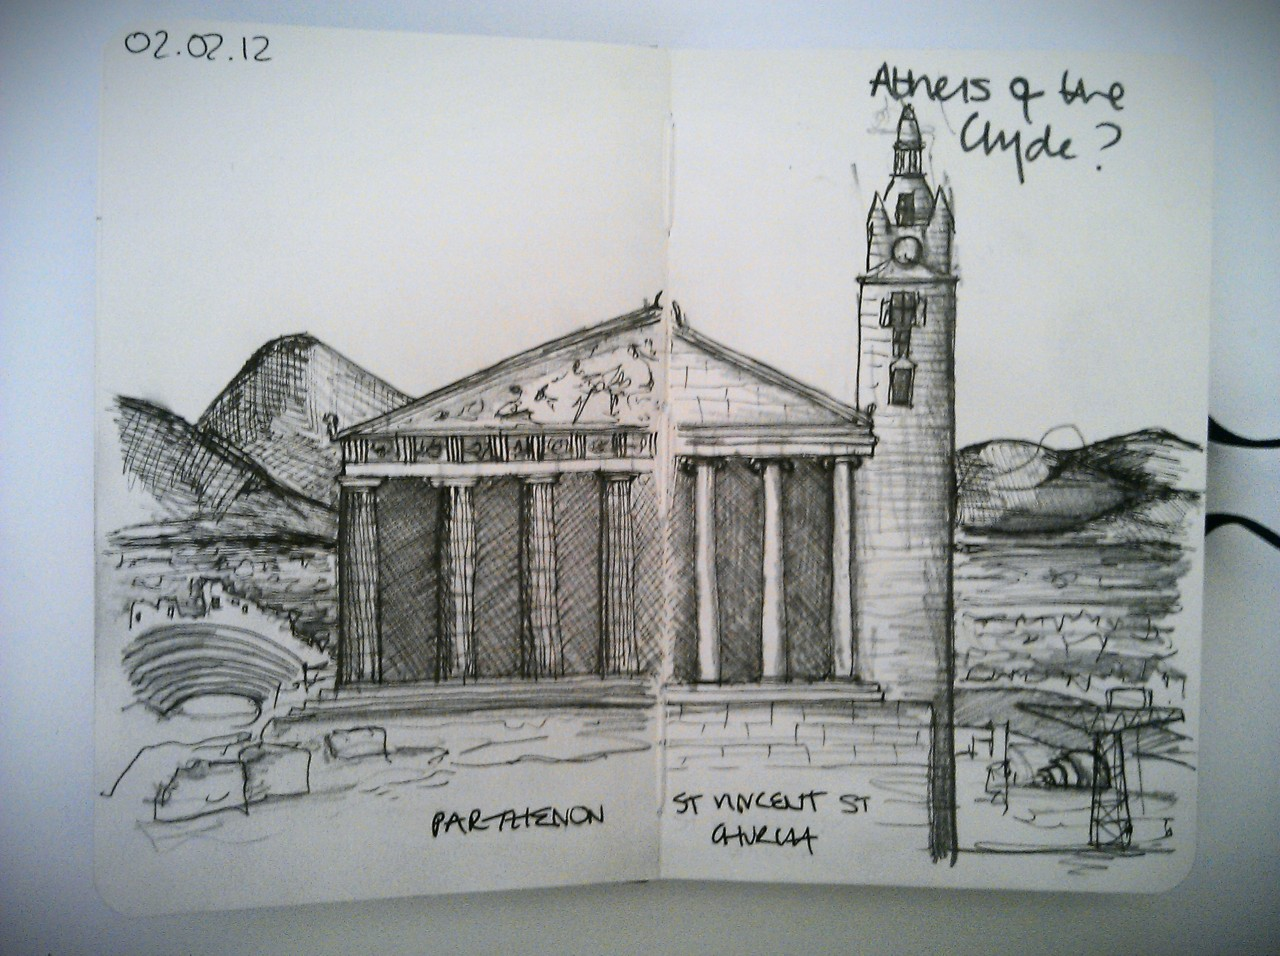 28drawingslater … day 2 … athens of the clyde? (what with all that Alexander Greek Thomson)    I feel the need to stress that these drawings are quick ideas, a quick scribble from brain to hand … they need a lot more work!